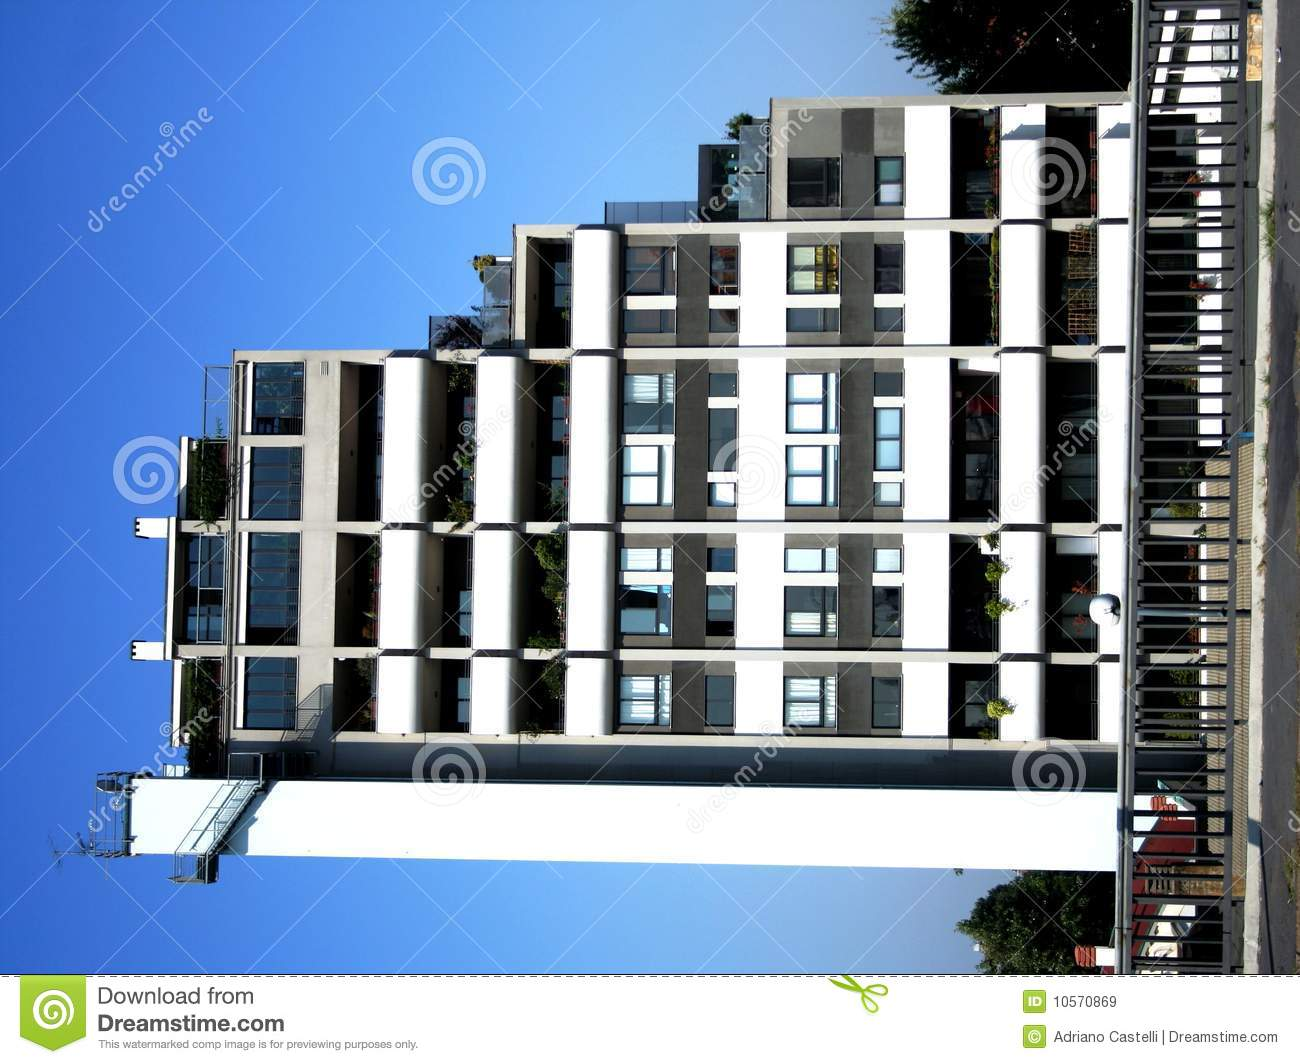 modern building design royalty free stock images - image: 10570869